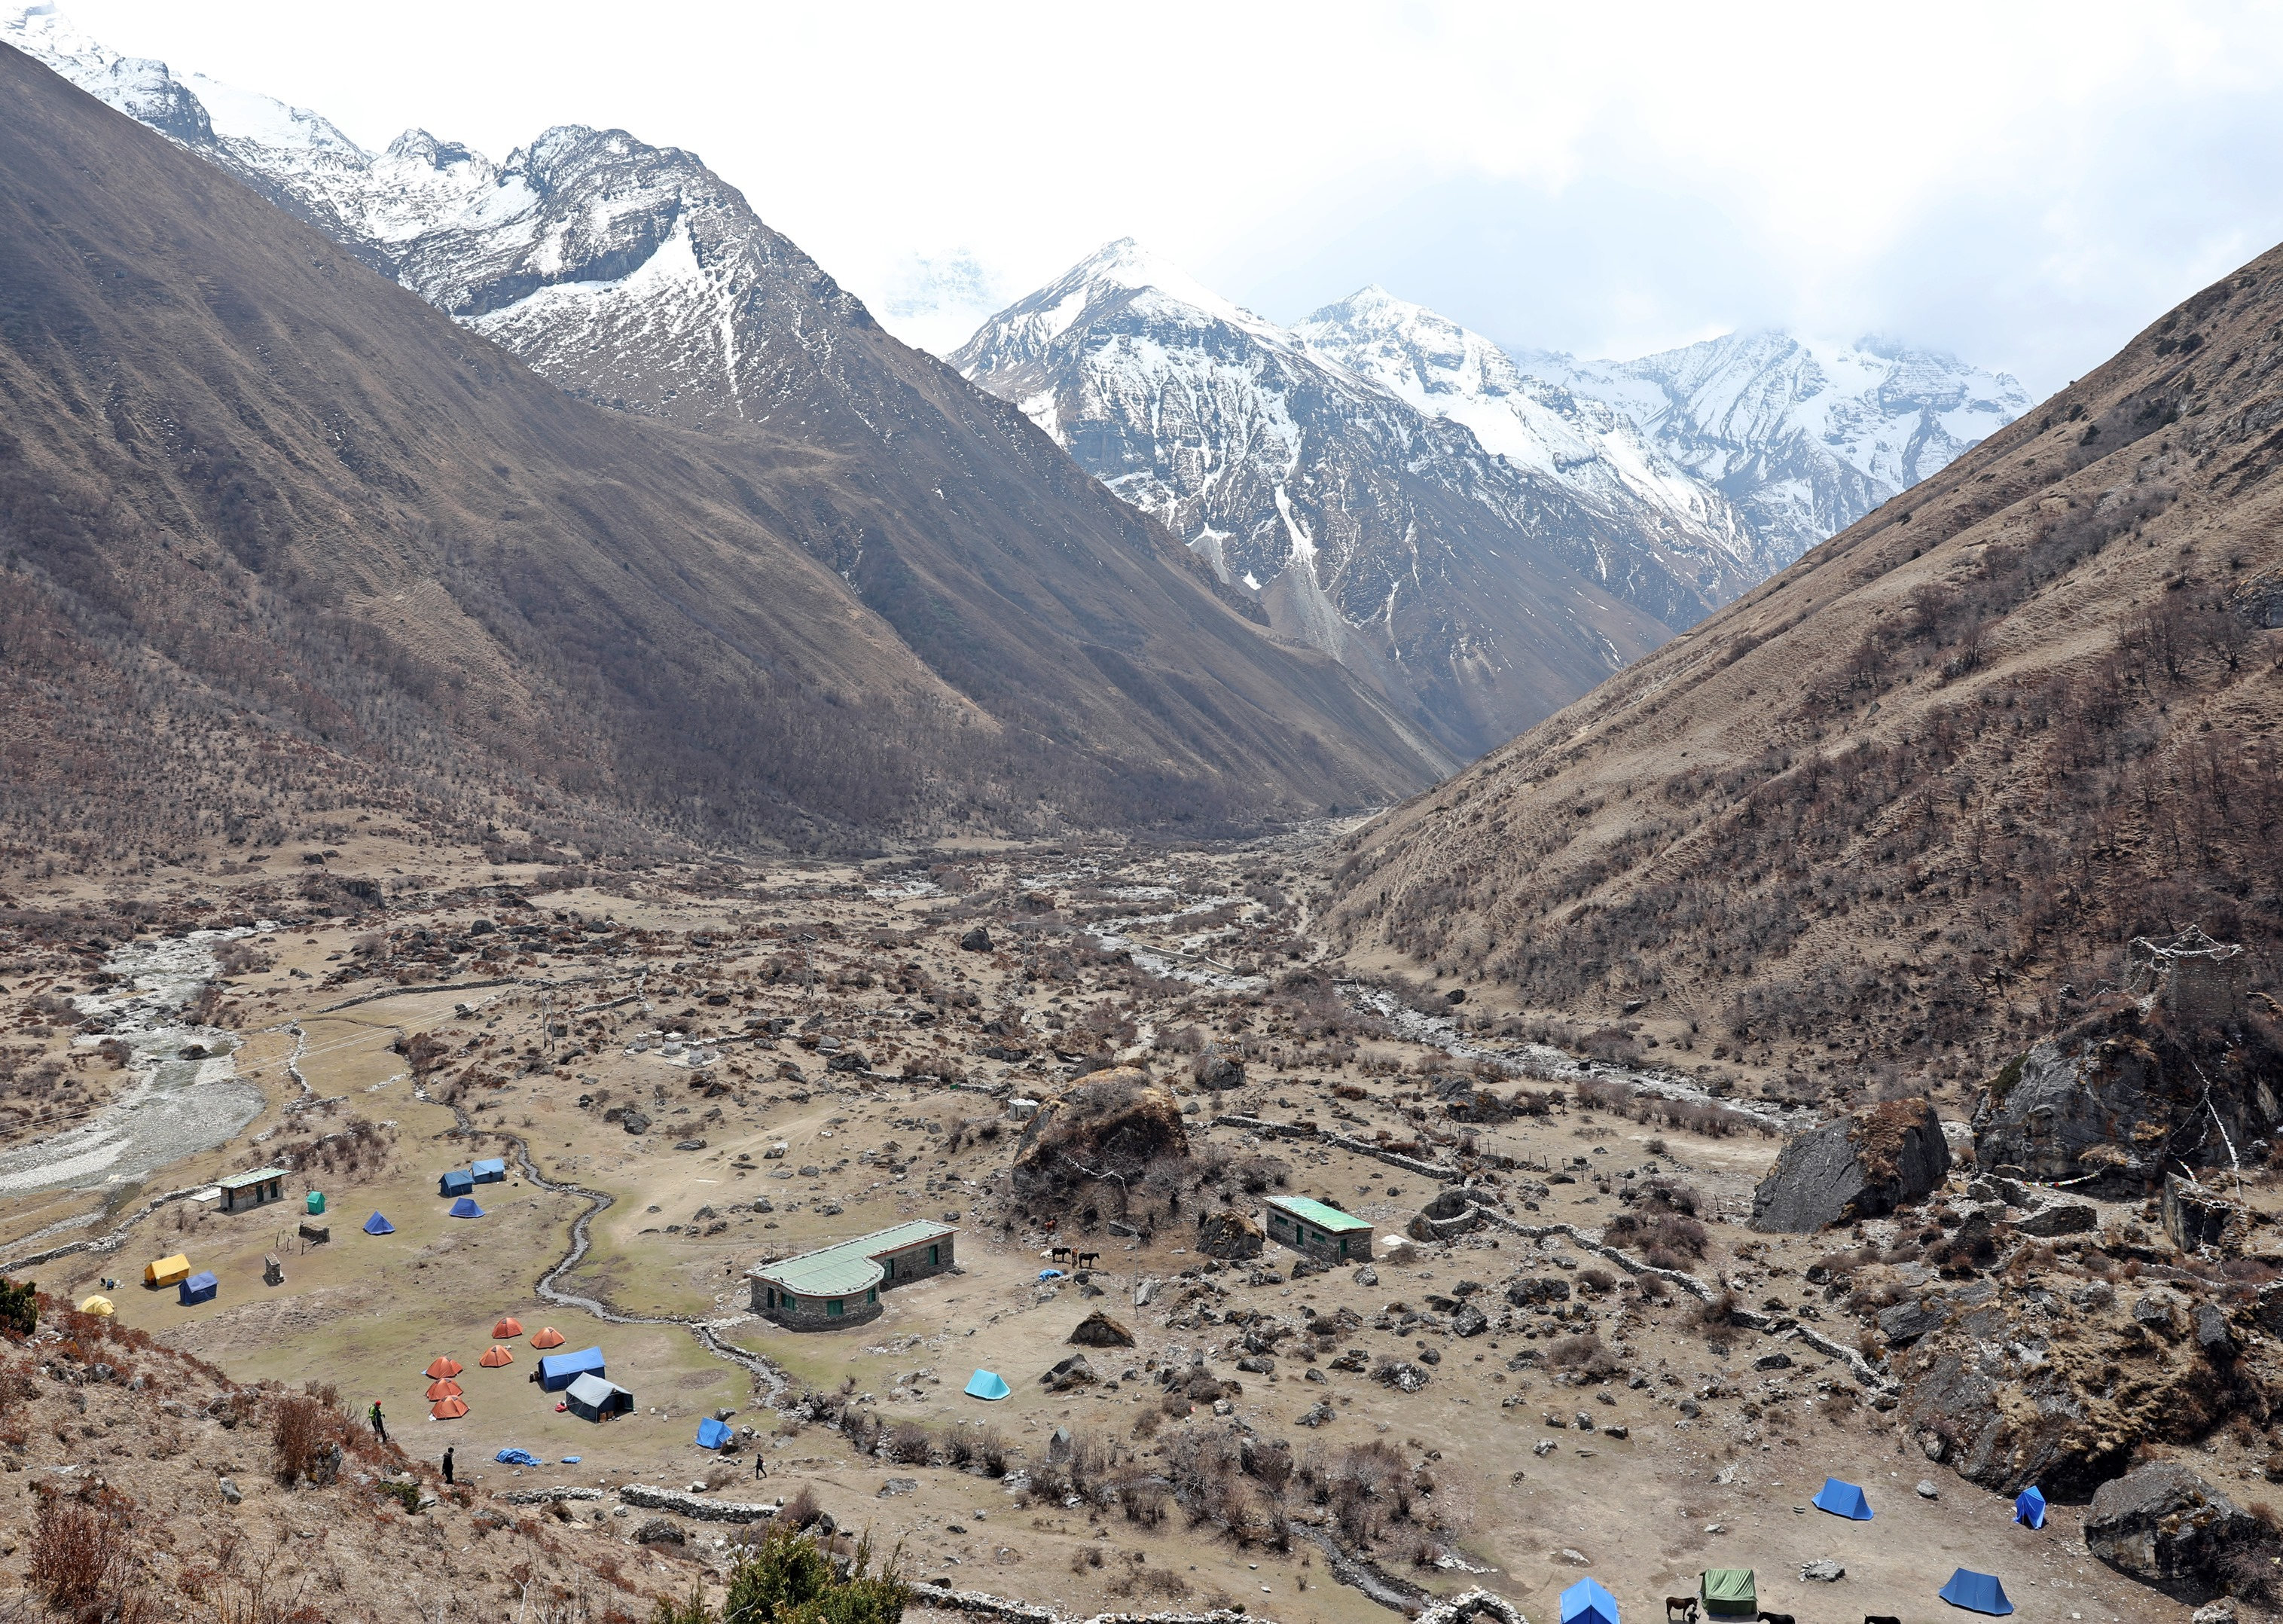 View of camp on acclimatization trek